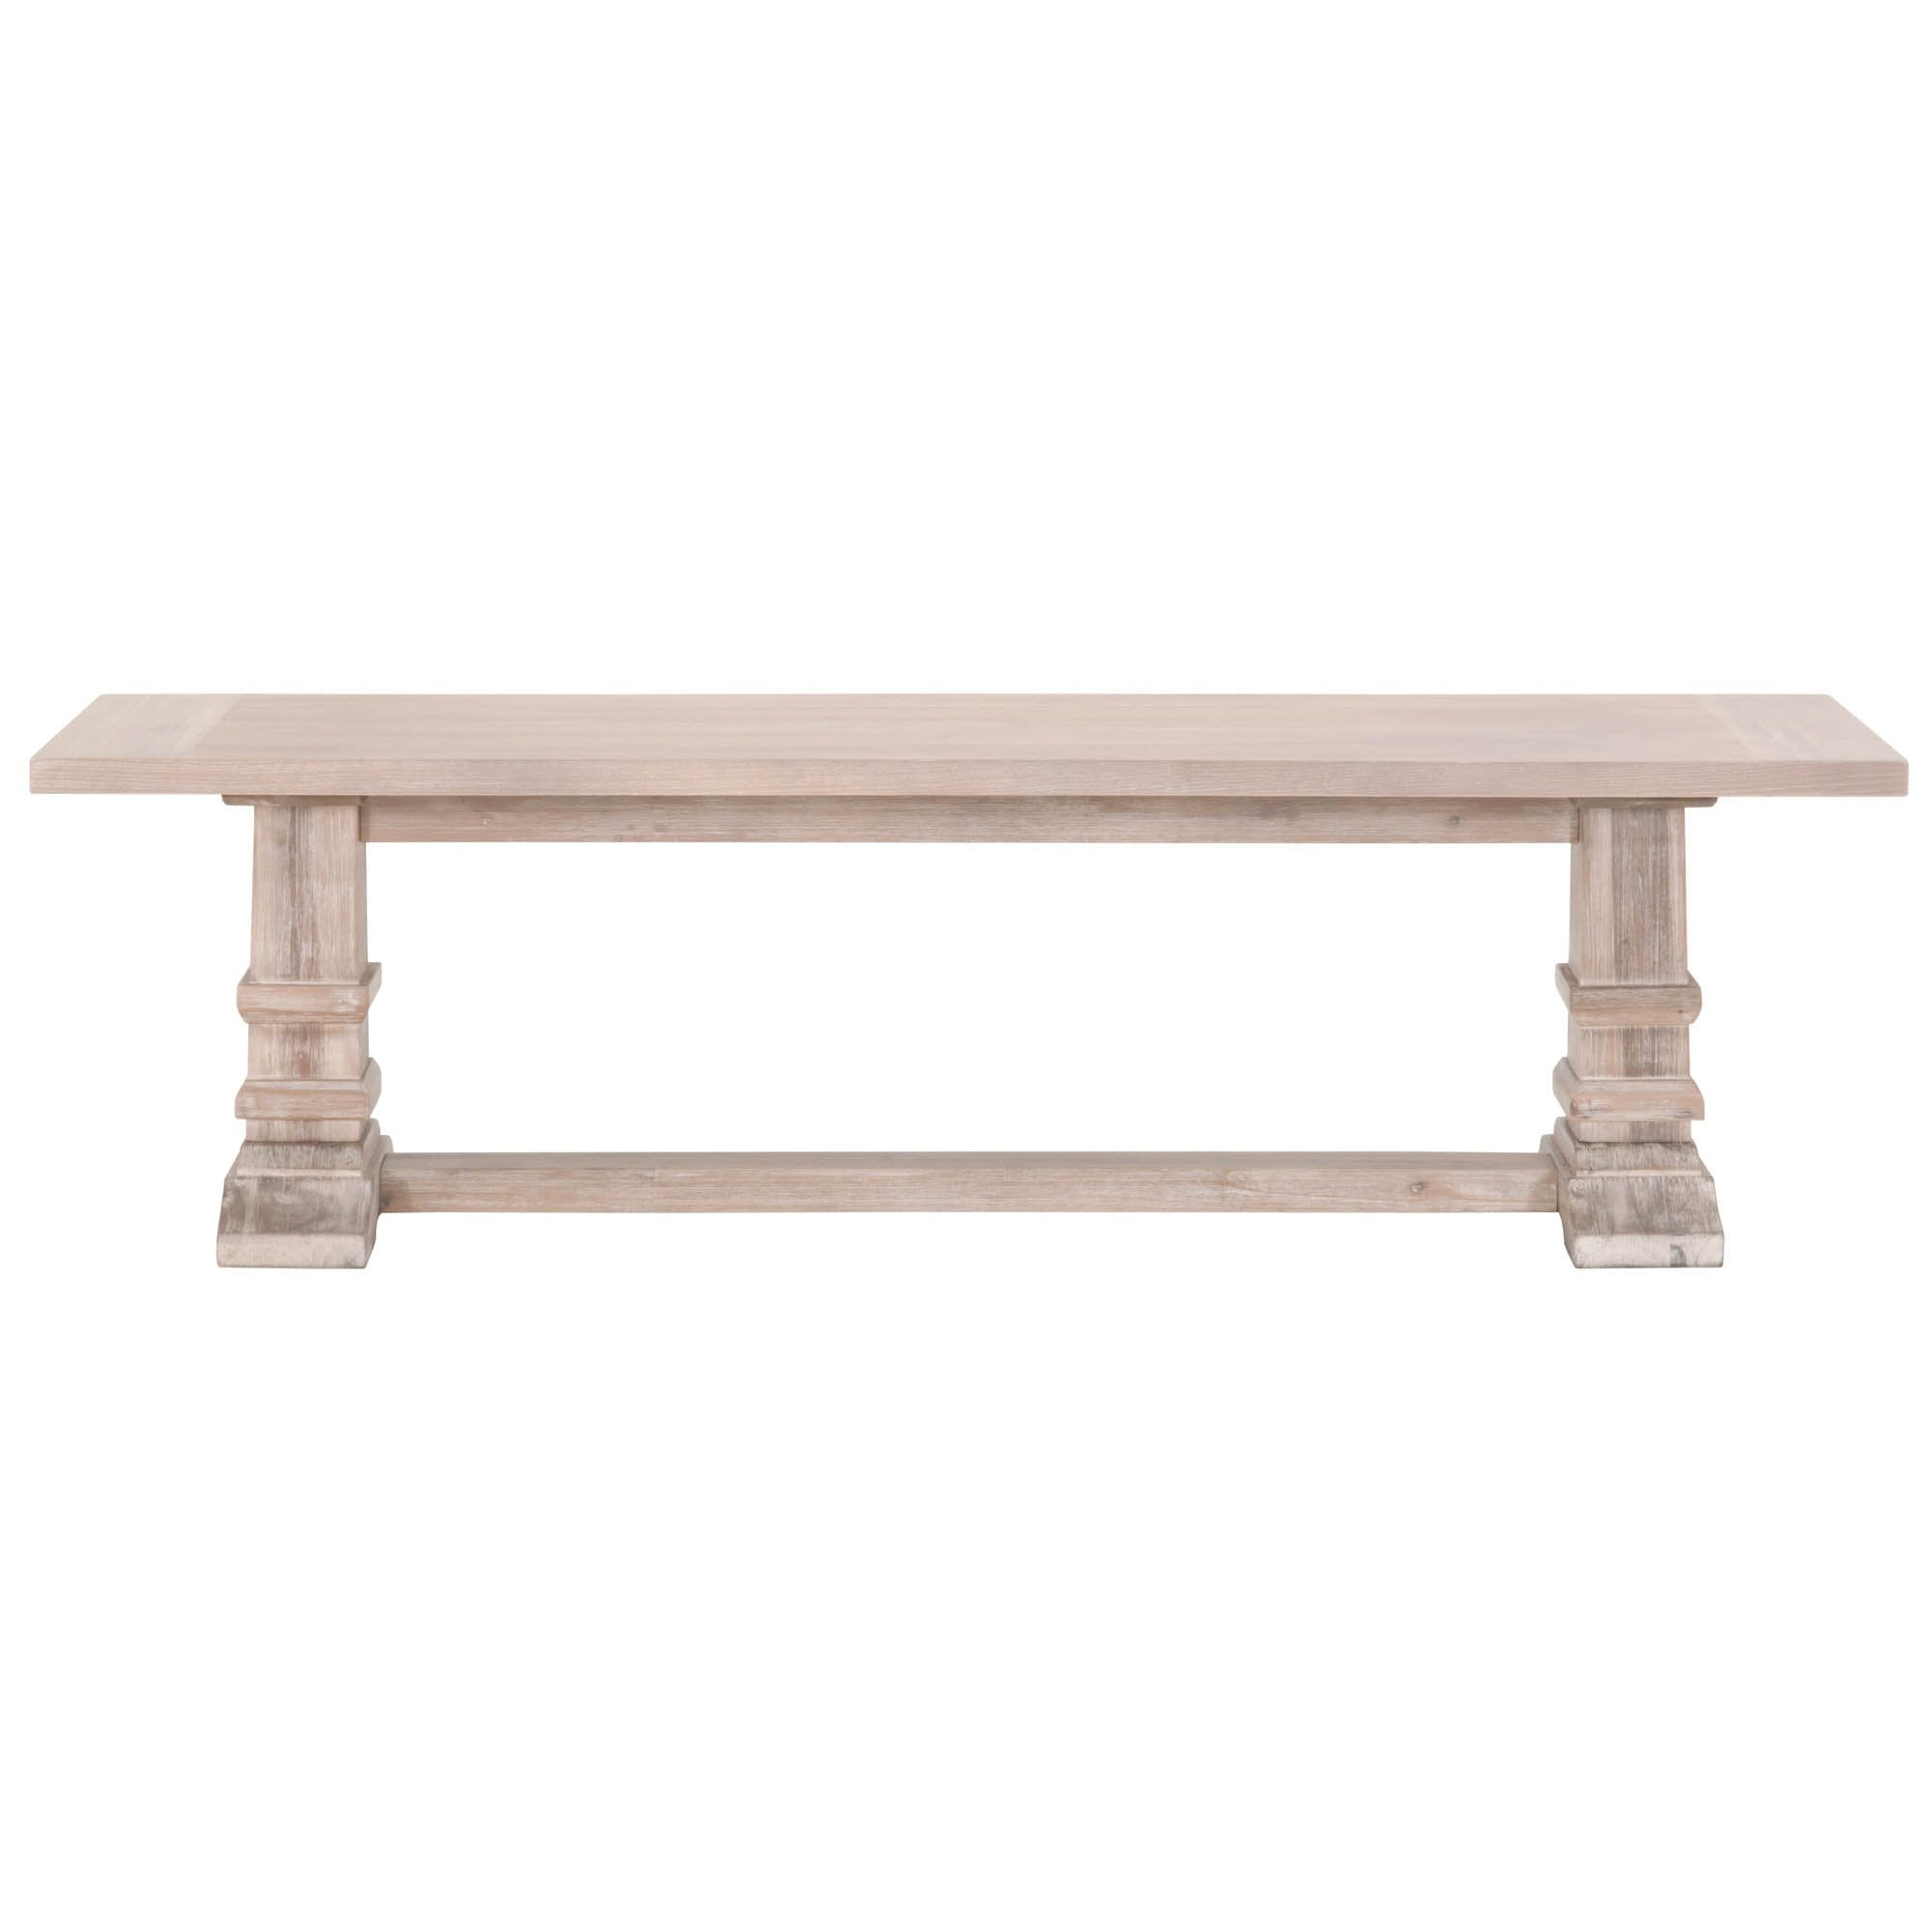 Hudson Large Dining Bench in Natural Gray